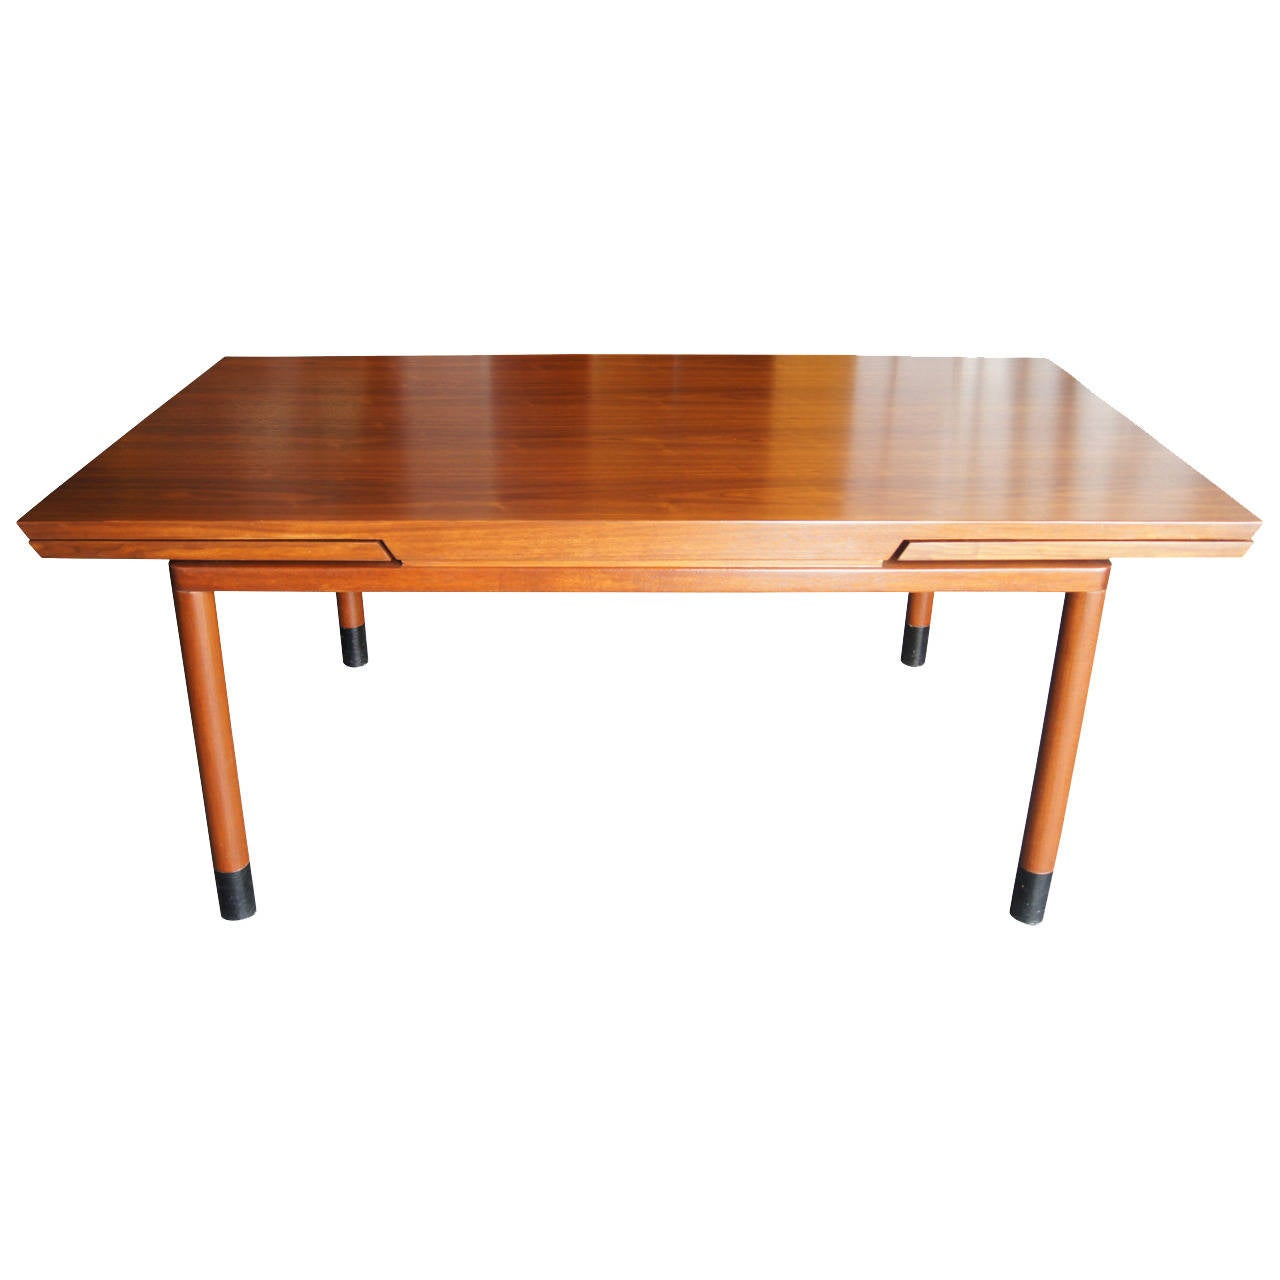 1950 Dining Room Furniture 1950s Dining Room Tables 934 For Sale At 1stdibs